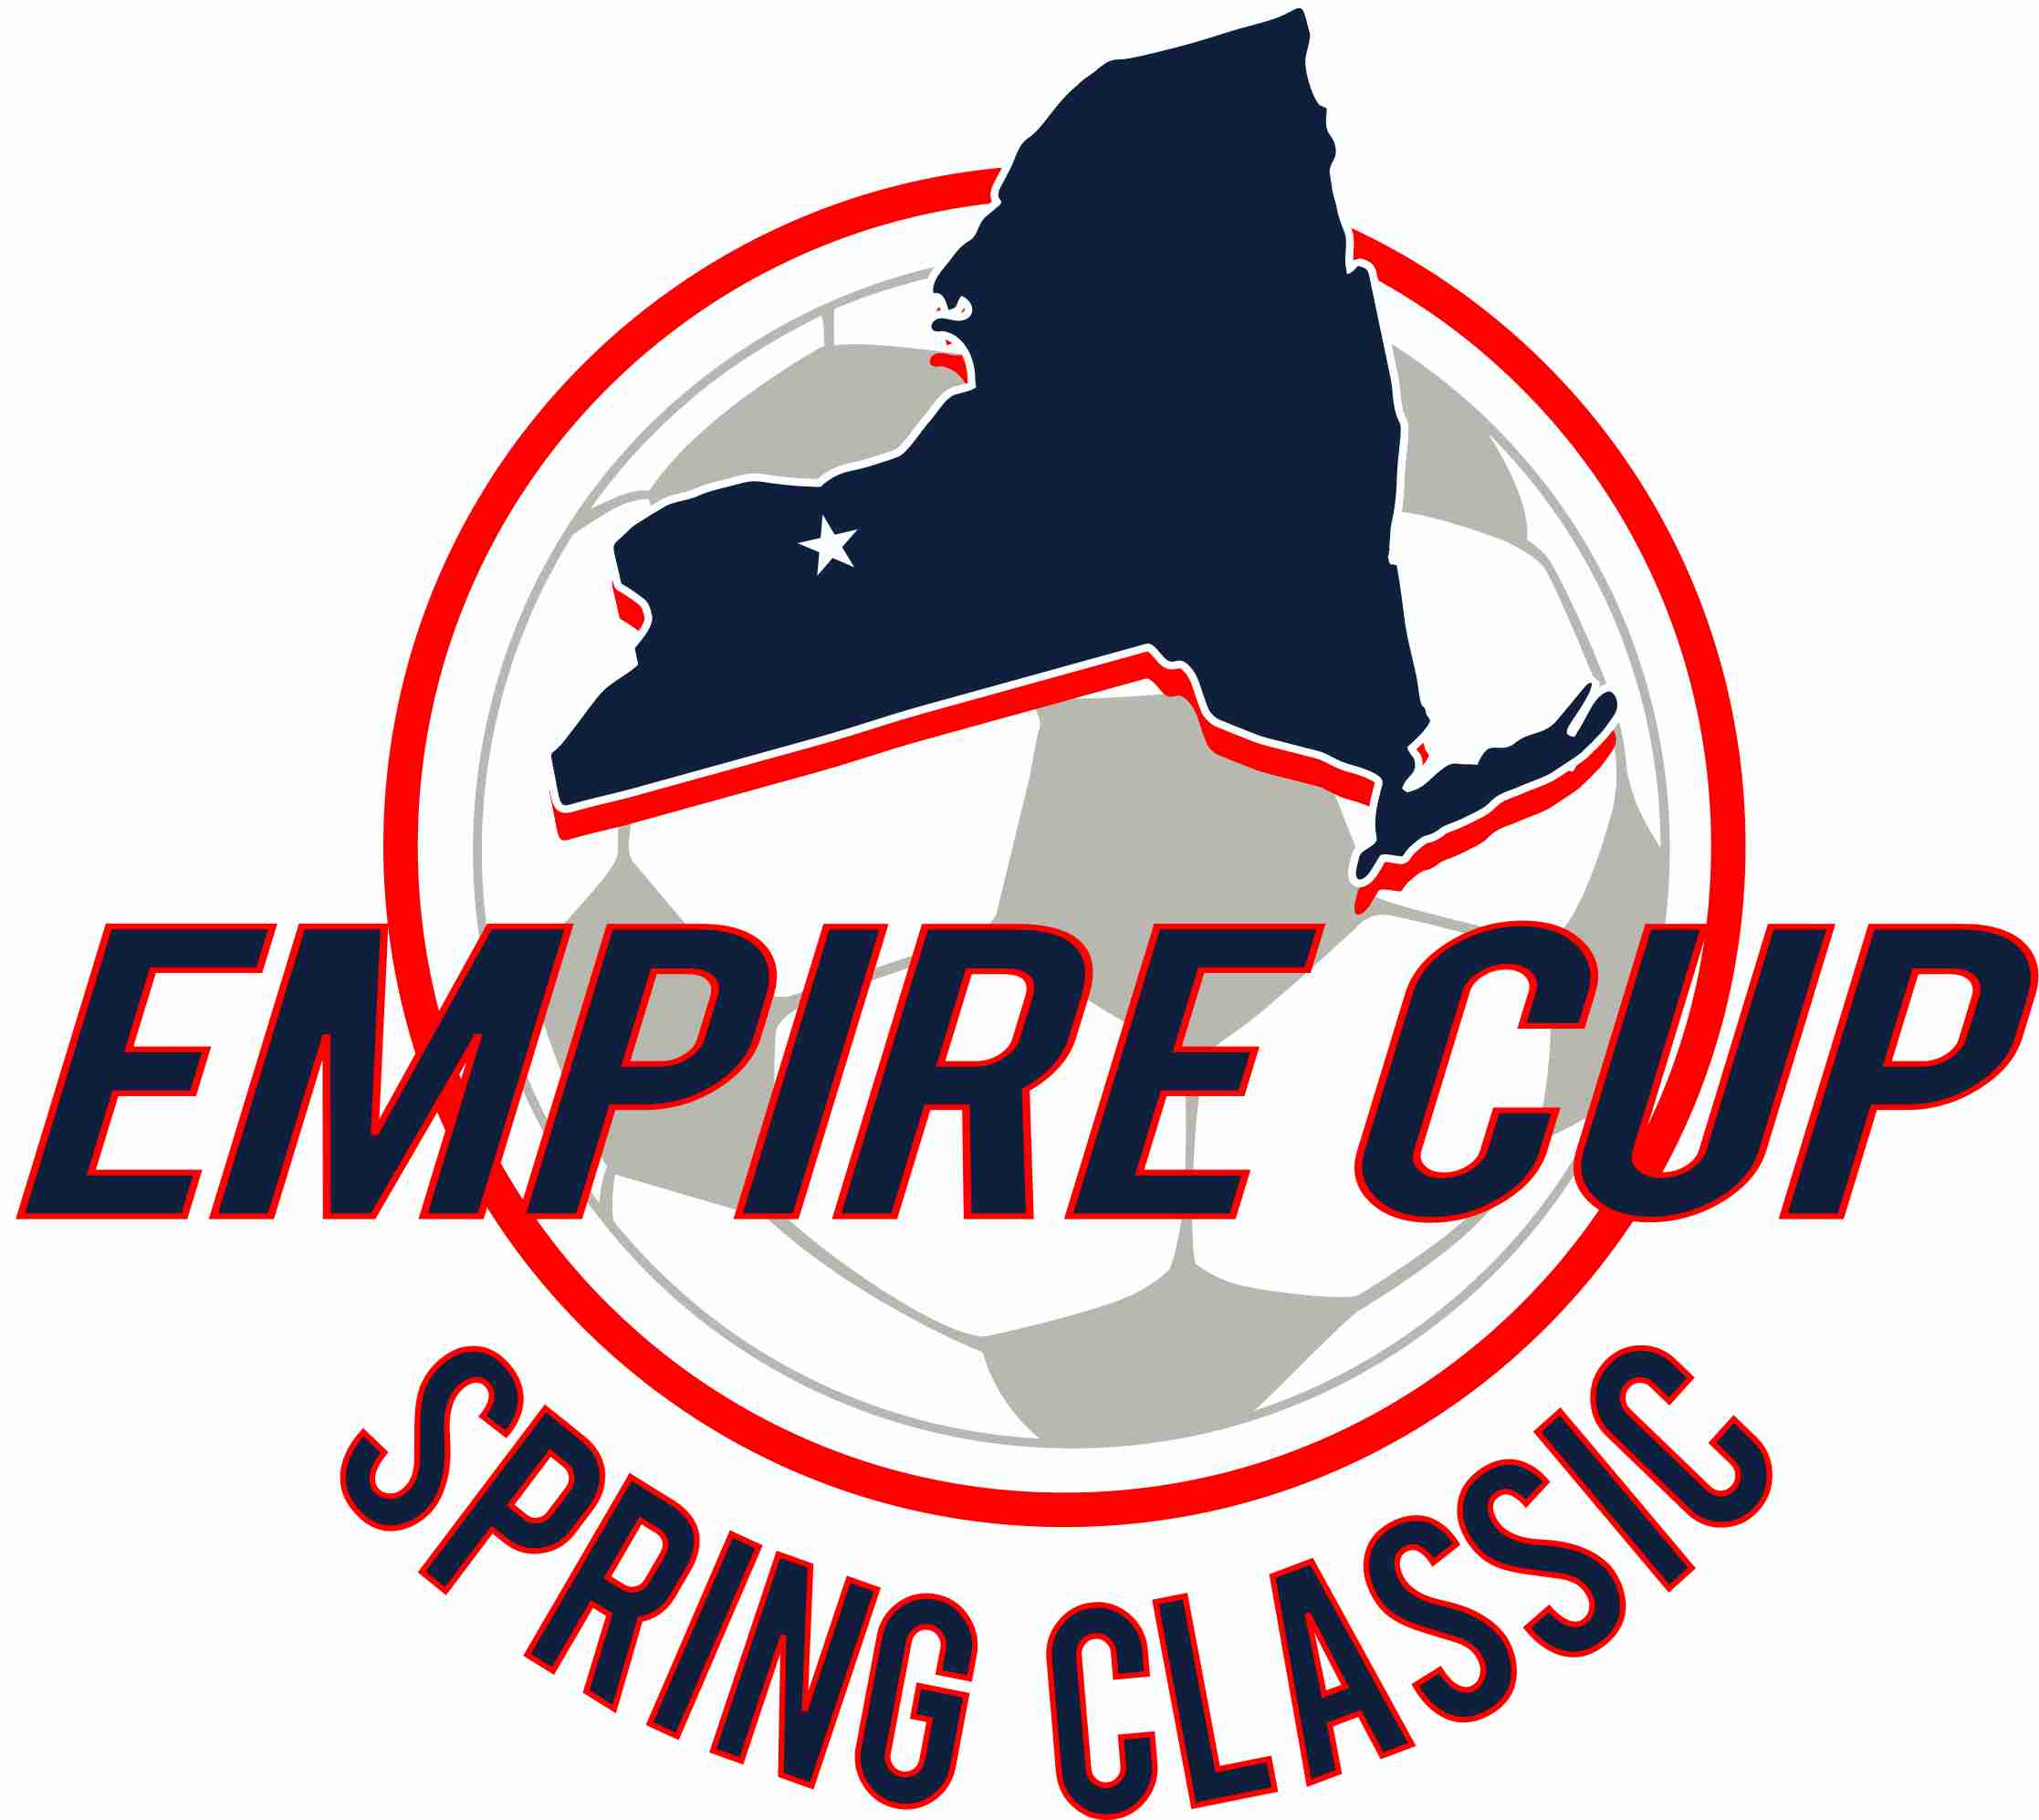 Empire Cup Spring Classic